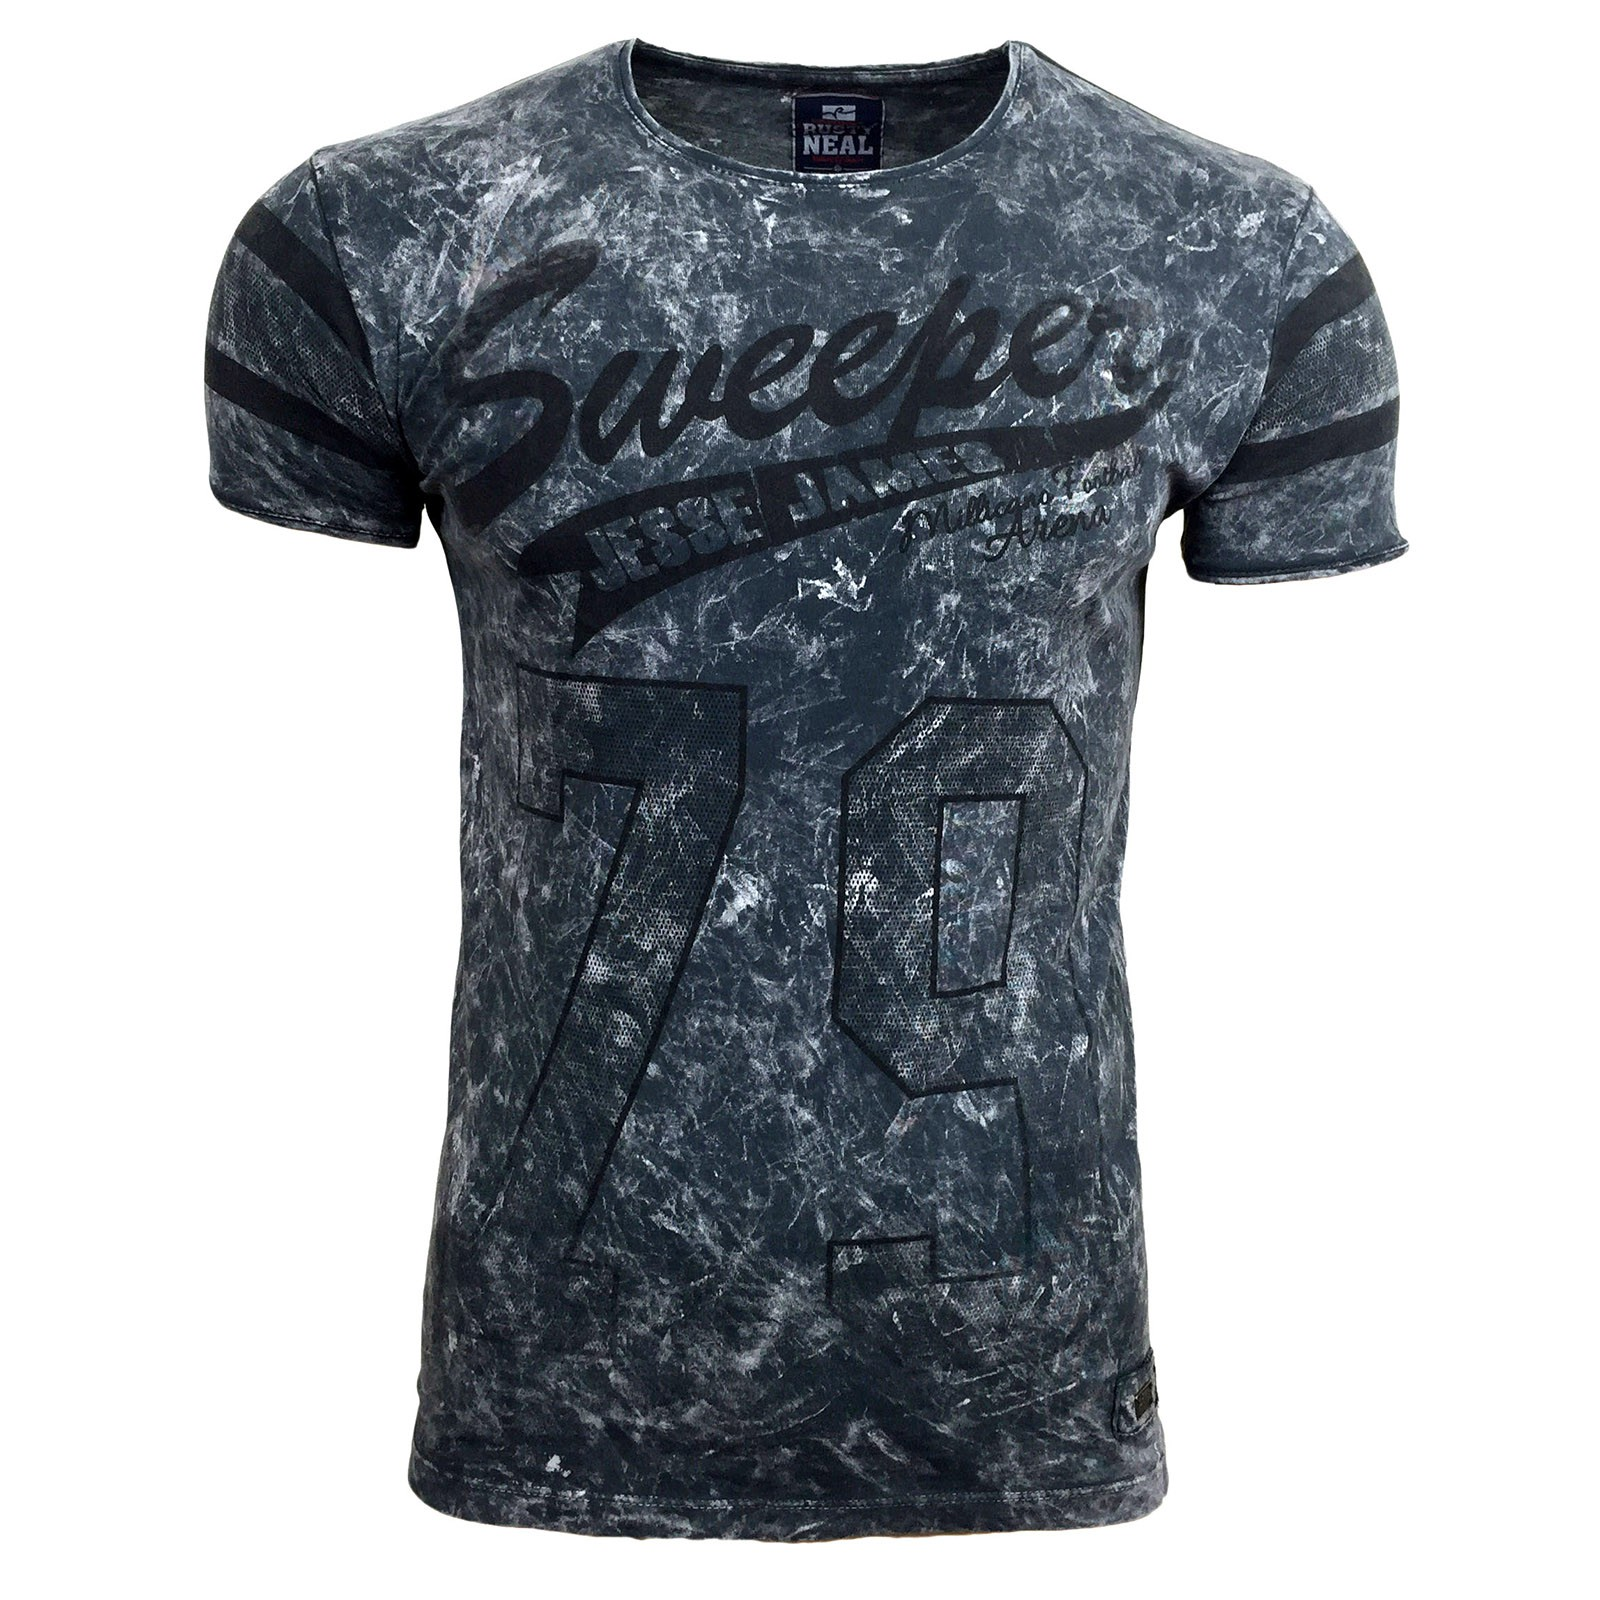 t shirt kurzarm herren rundhals stone washed optik batik shirt rn 16754 avroni ebay. Black Bedroom Furniture Sets. Home Design Ideas